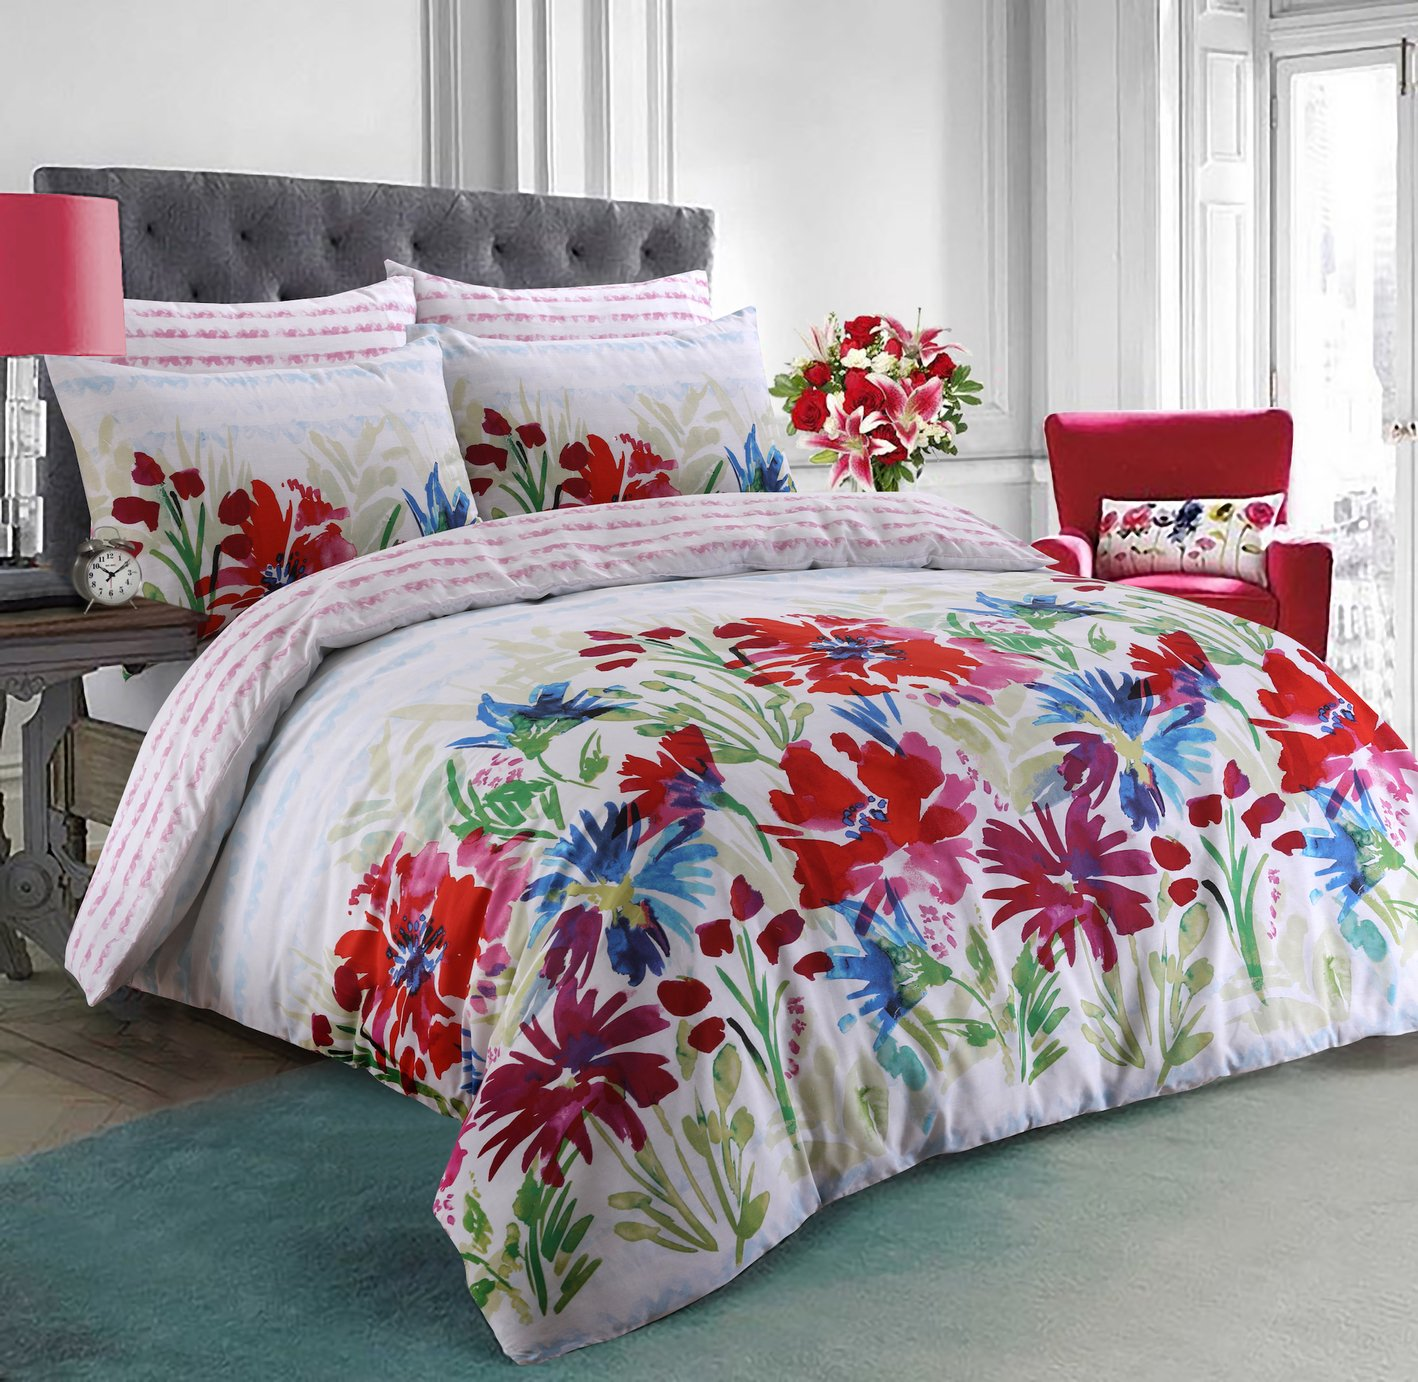 Argos Home Bright Garden Flowers Bedding Set – Kingsize